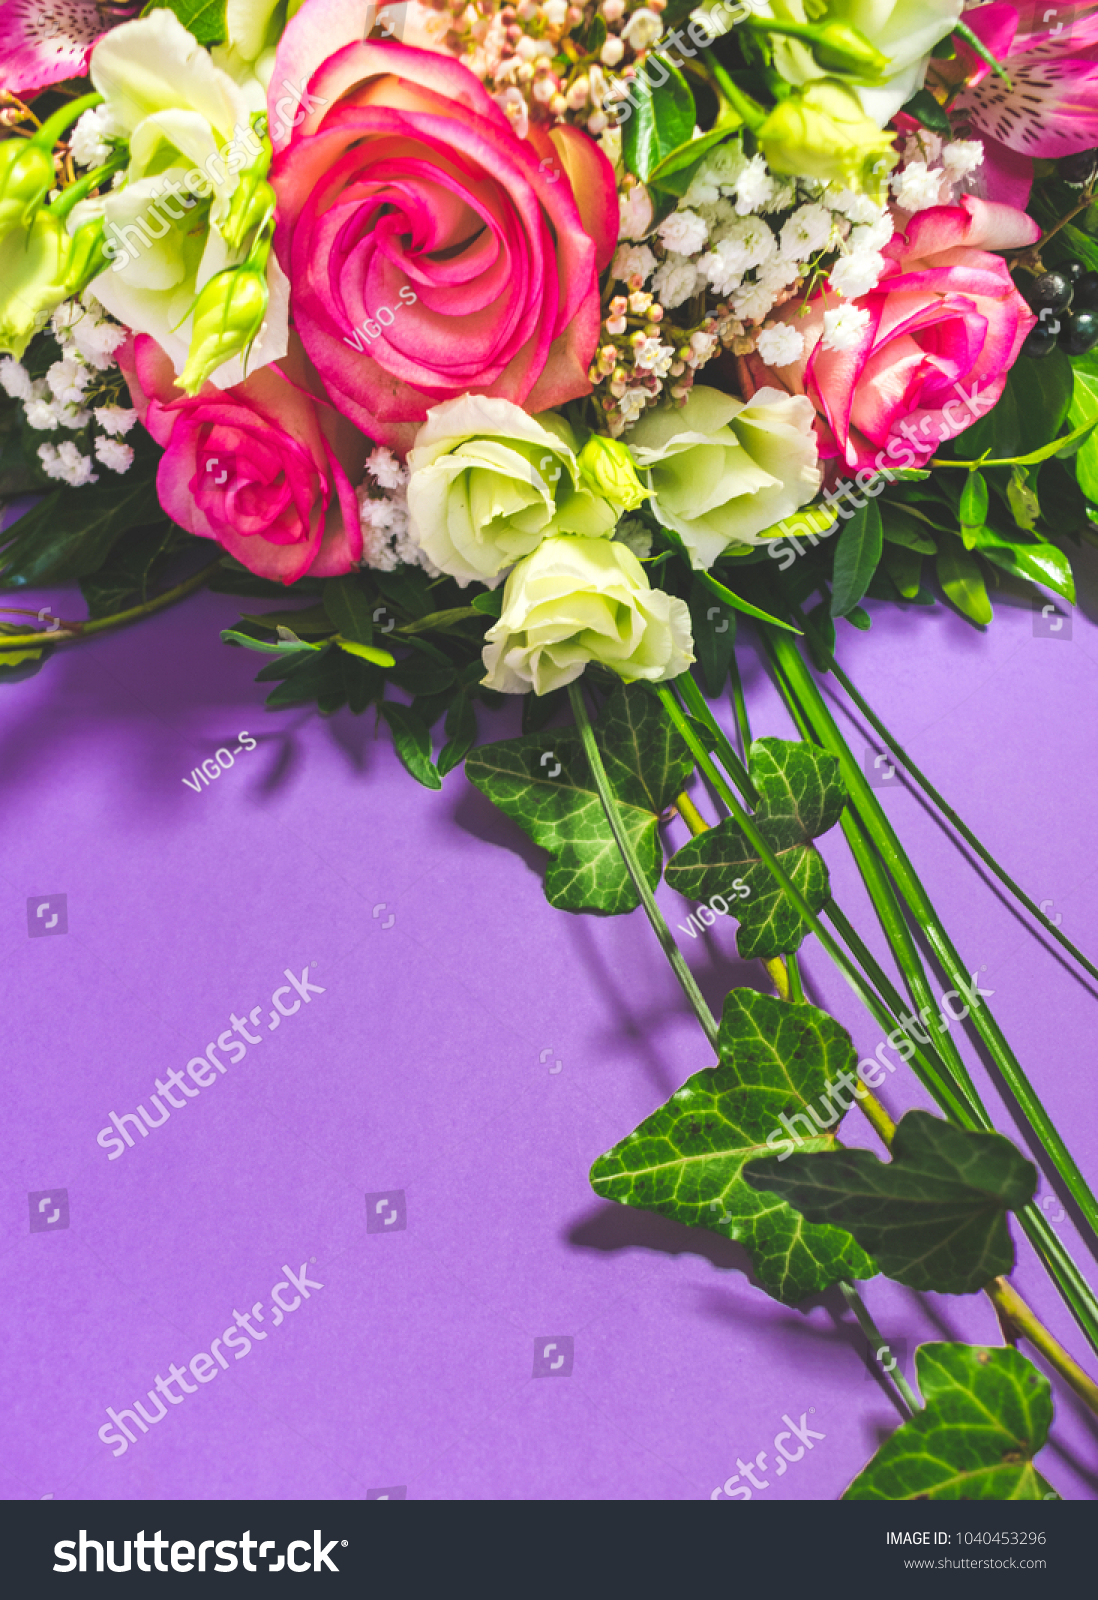 Top view beautiful bouquet pink roses stock photo edit now top view of beautiful bouquet of pink roses pink alstroemeria and white lisianthus flowers on izmirmasajfo